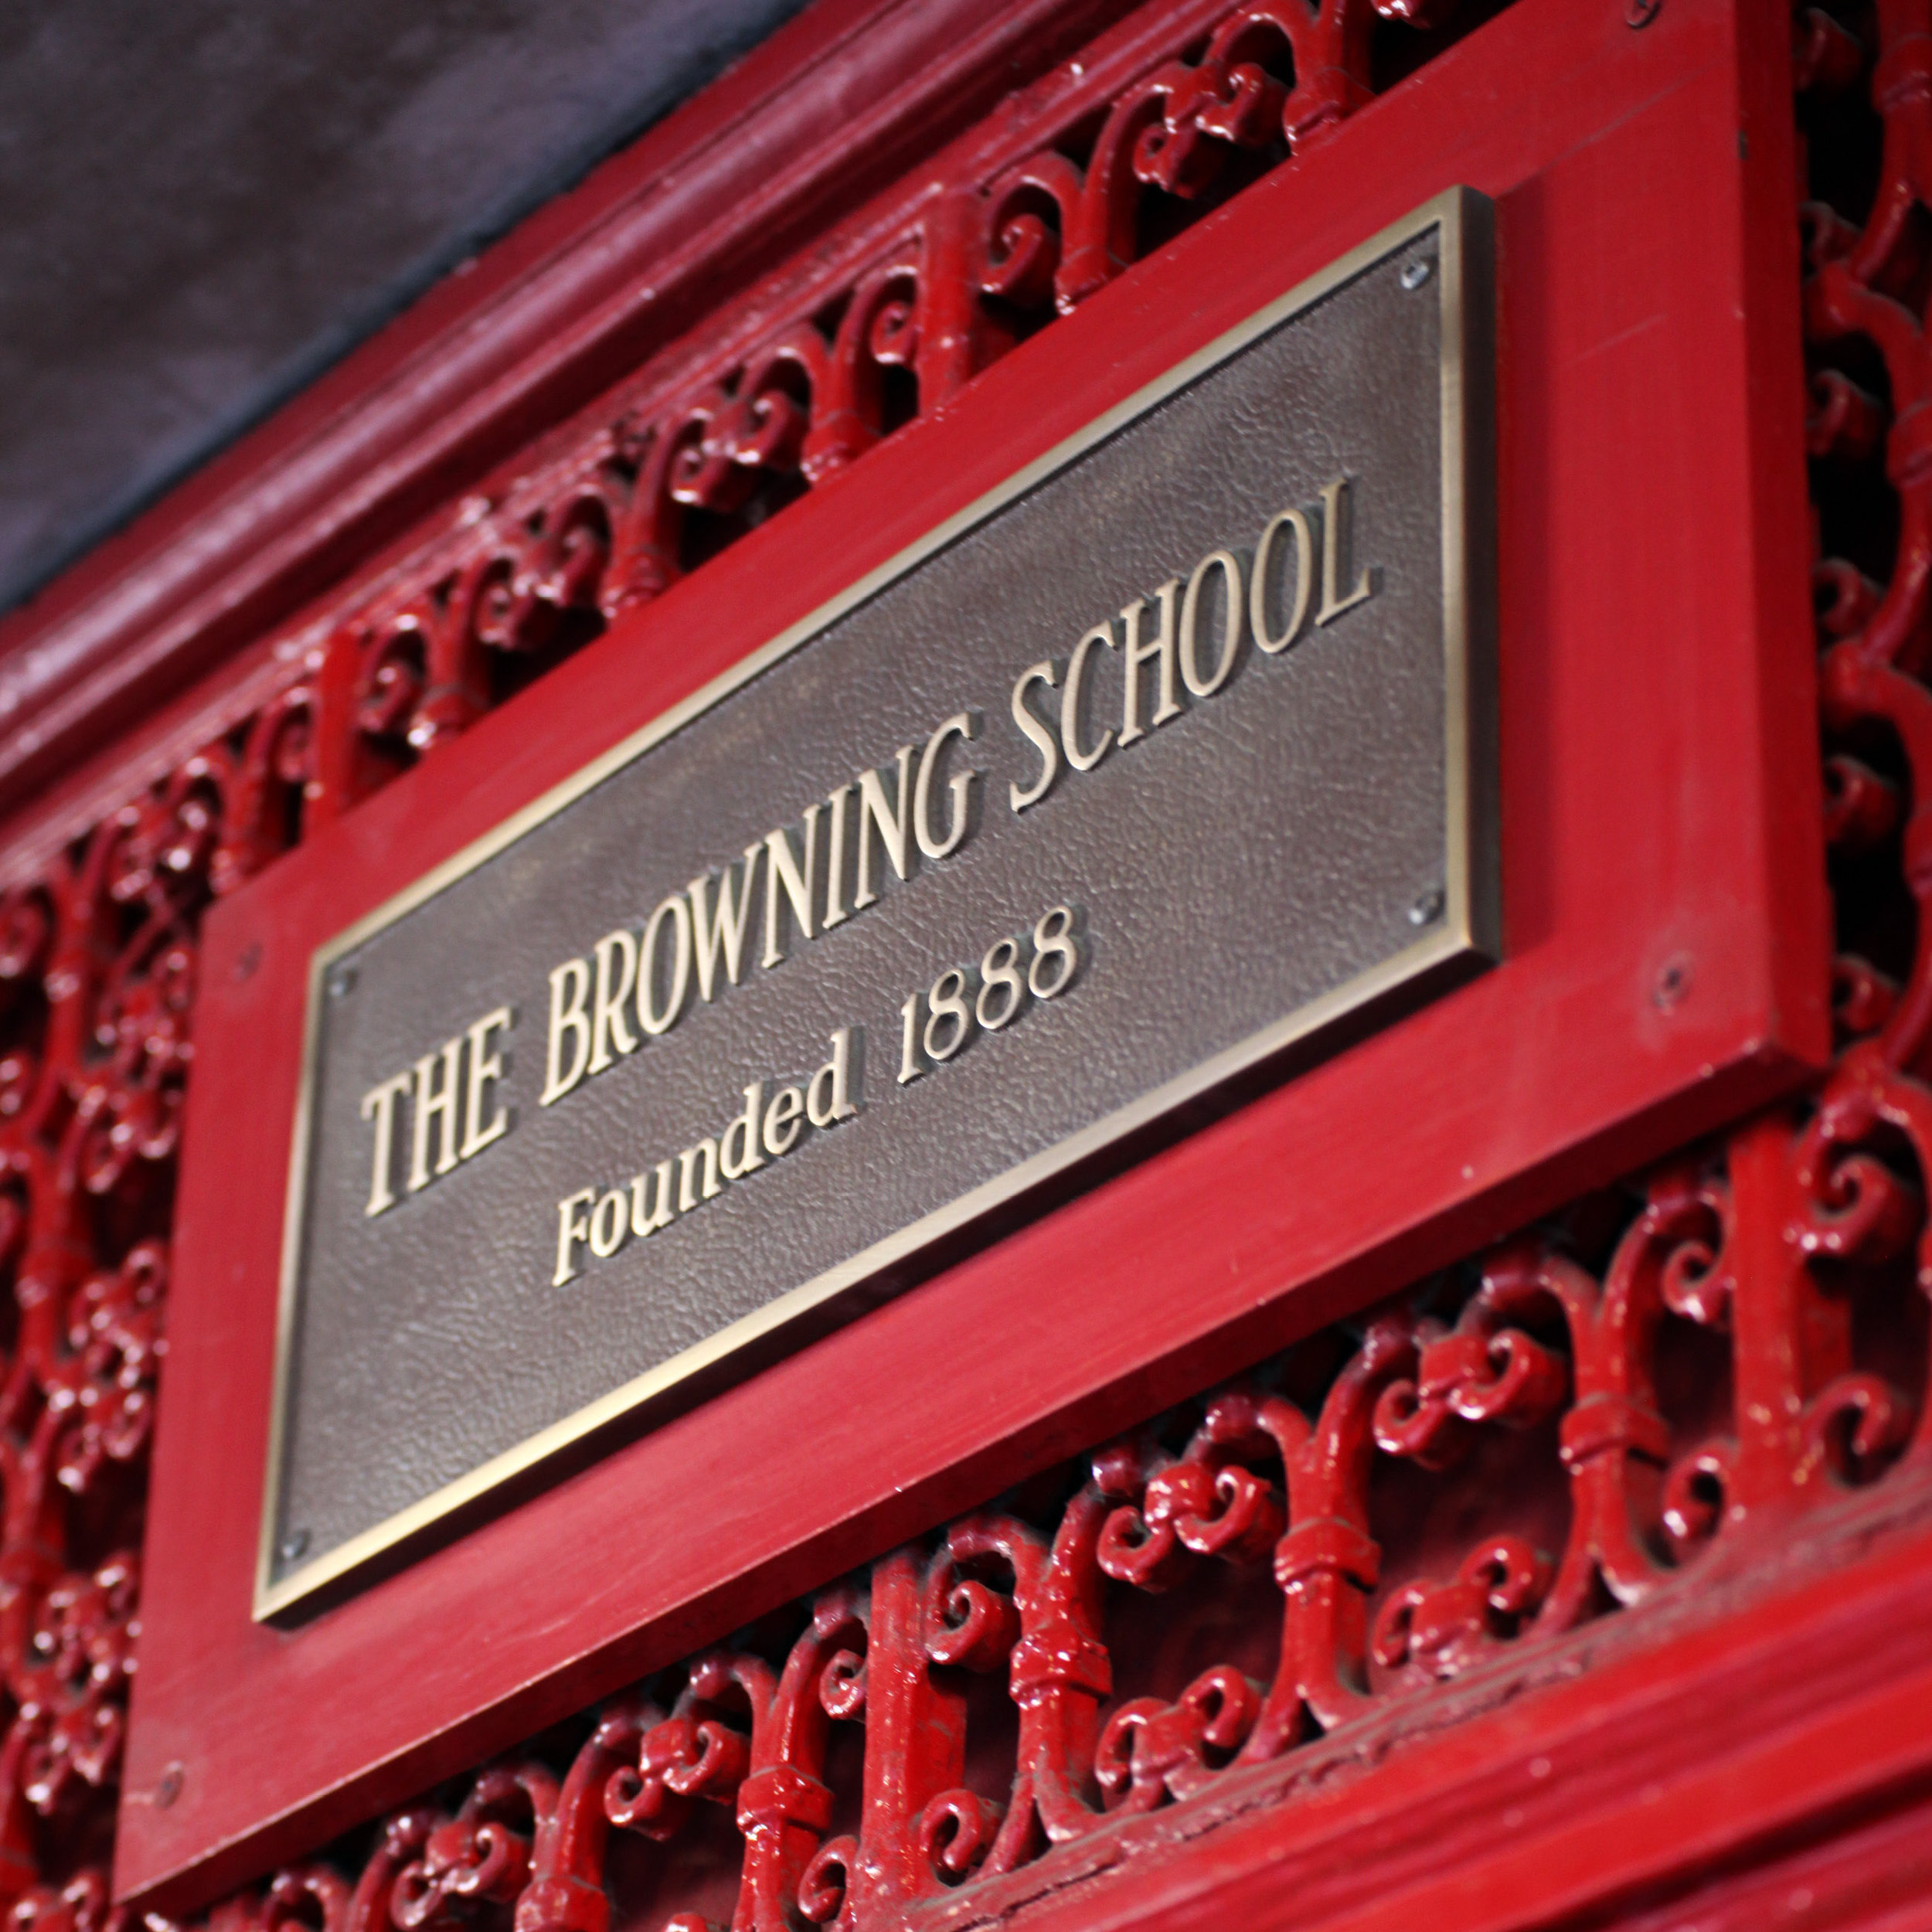 About Browning - Learn More